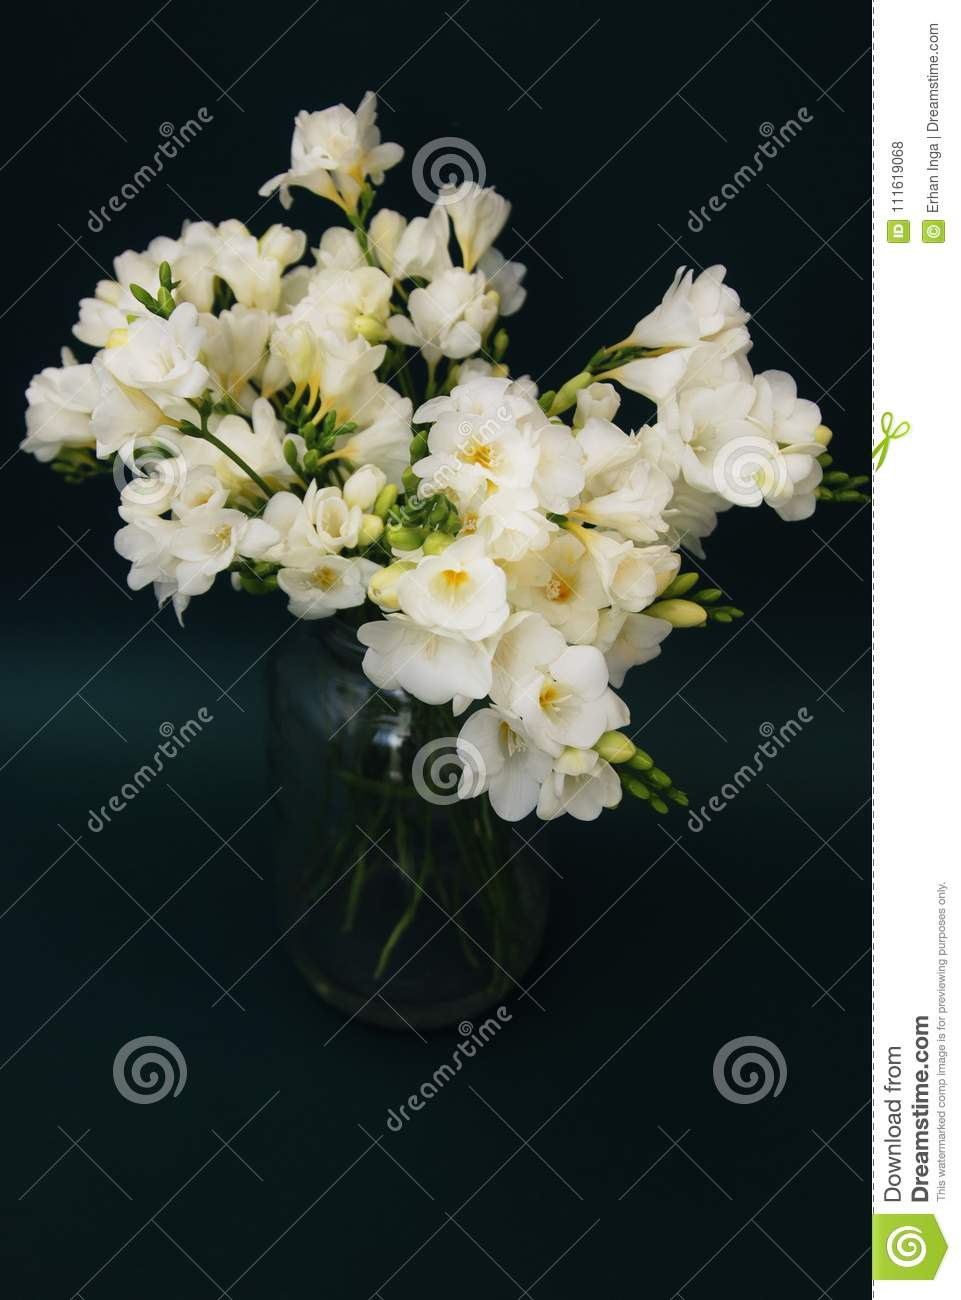 White Freesia Bouquet of Flowers in Glass Vase on Black Background. close up.